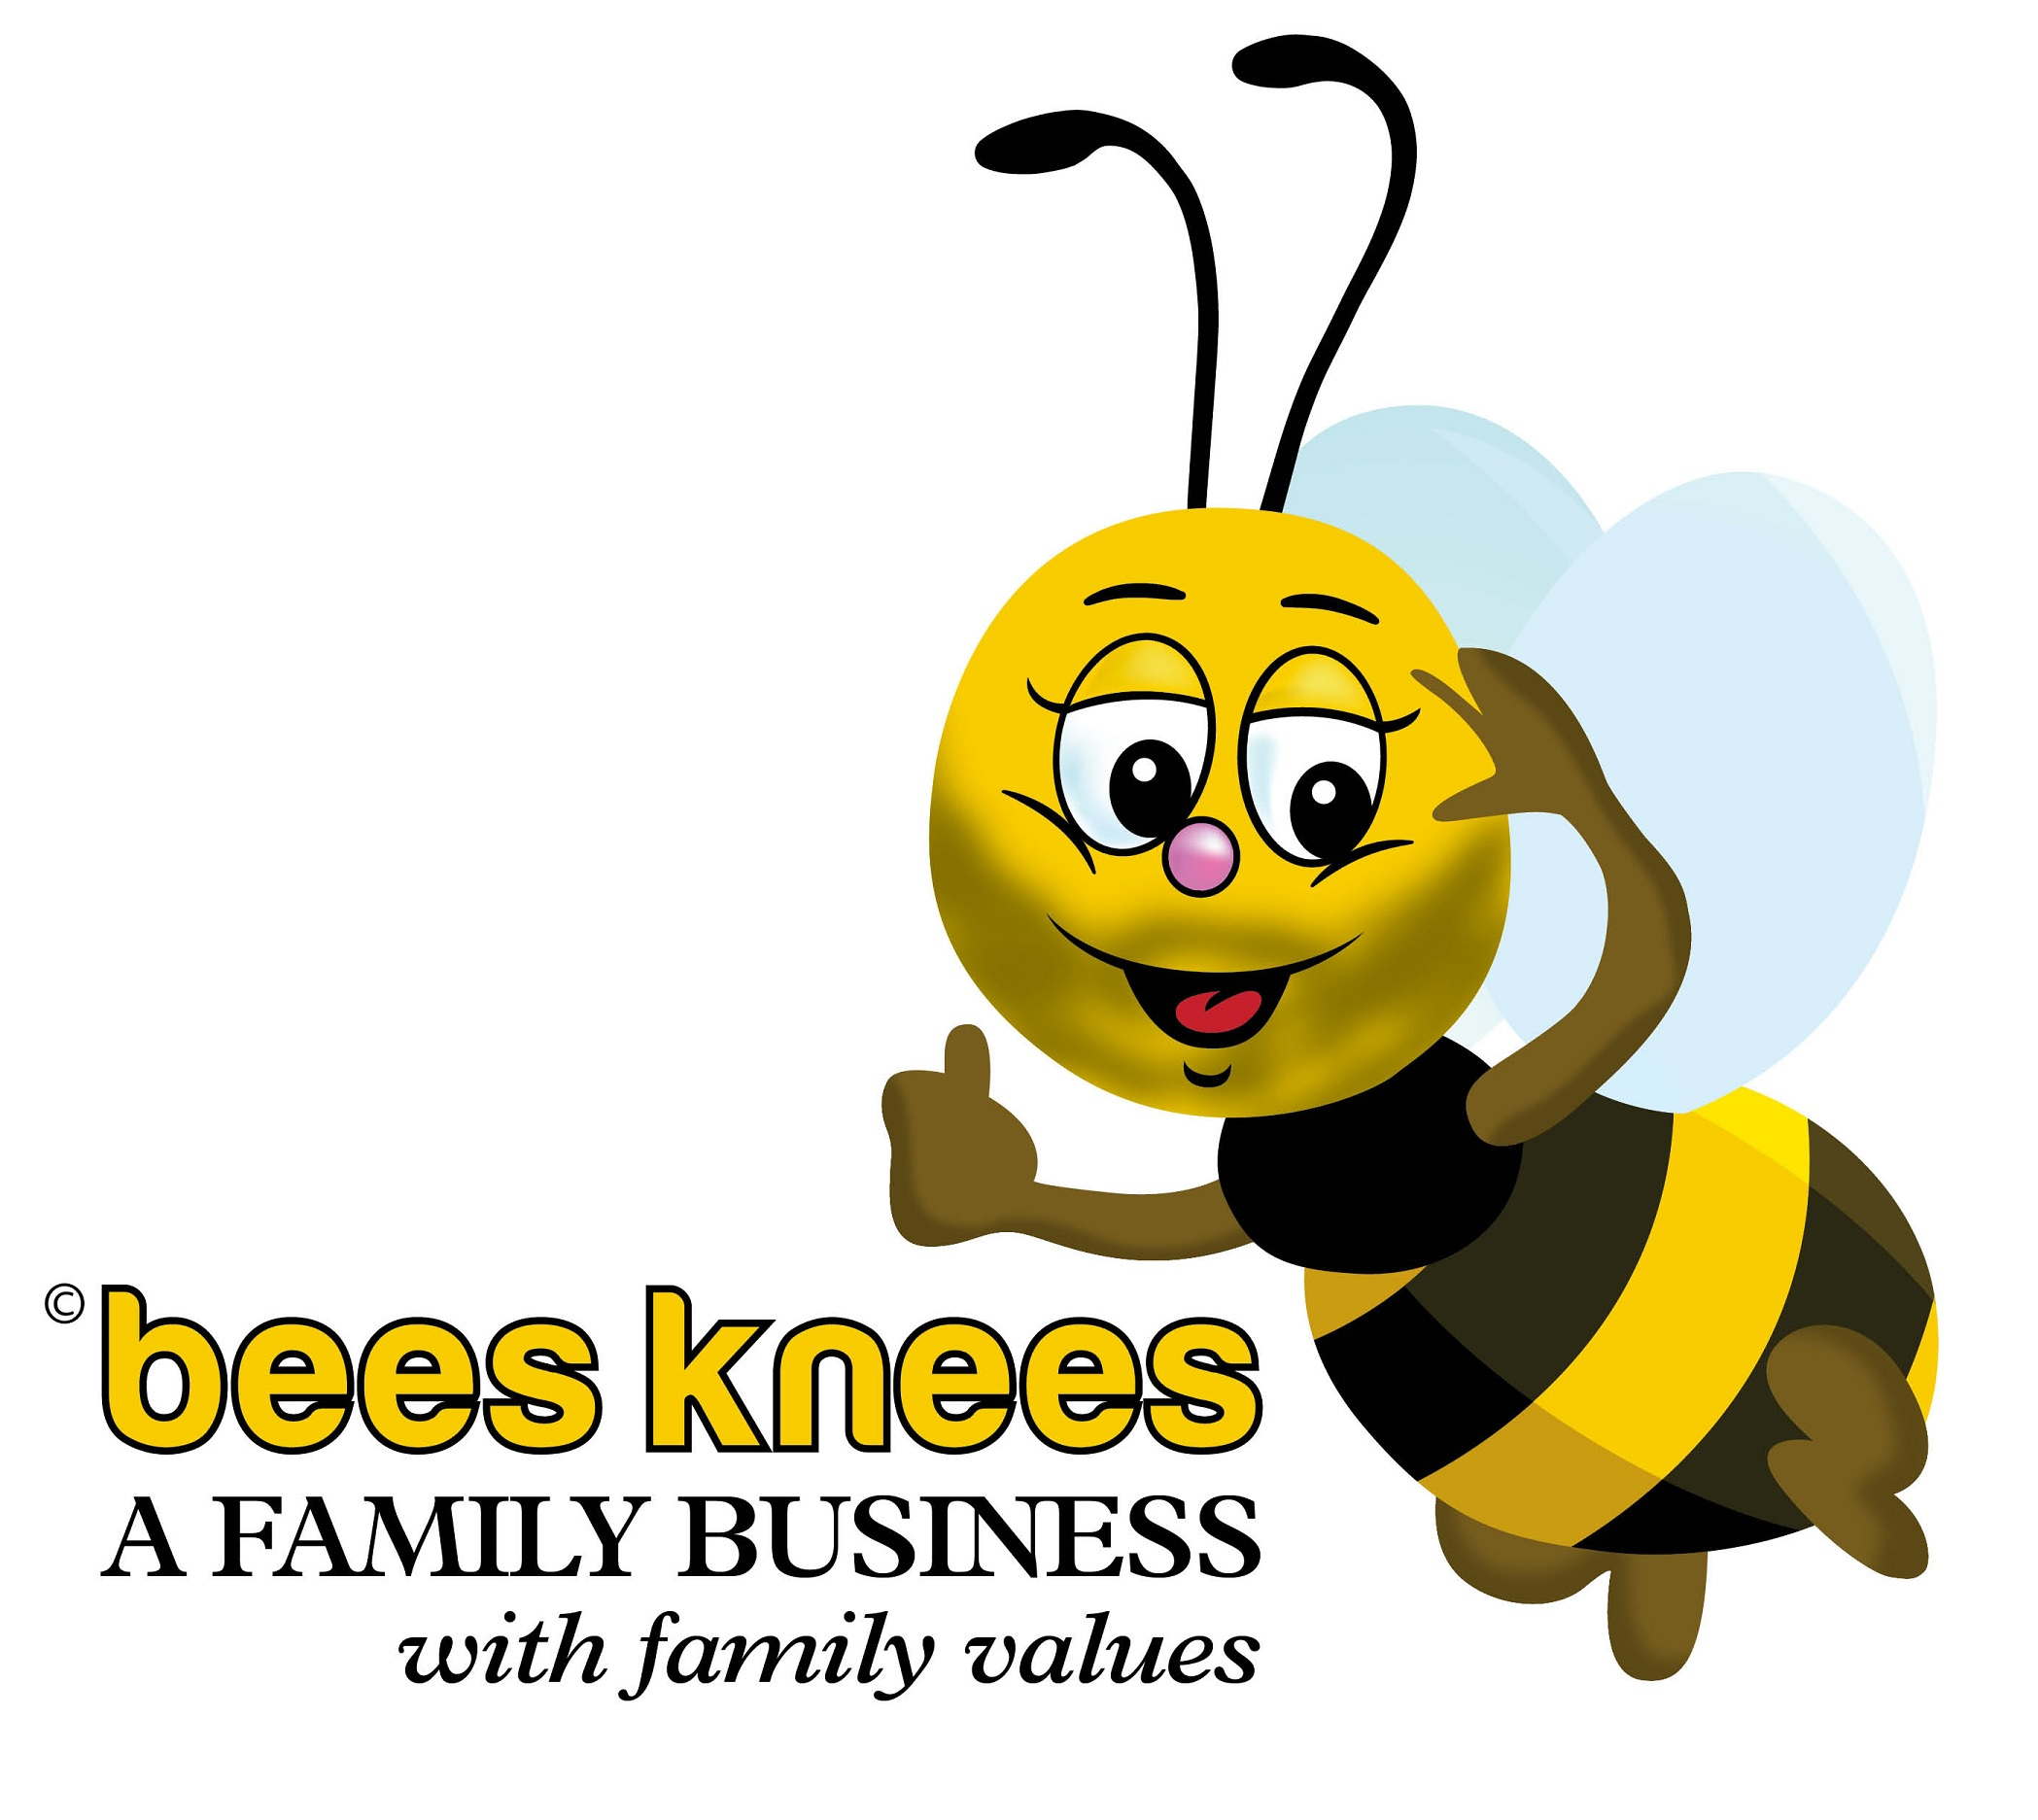 Metal and Stone Ltd t/a BeesKnees Pest & Property Services